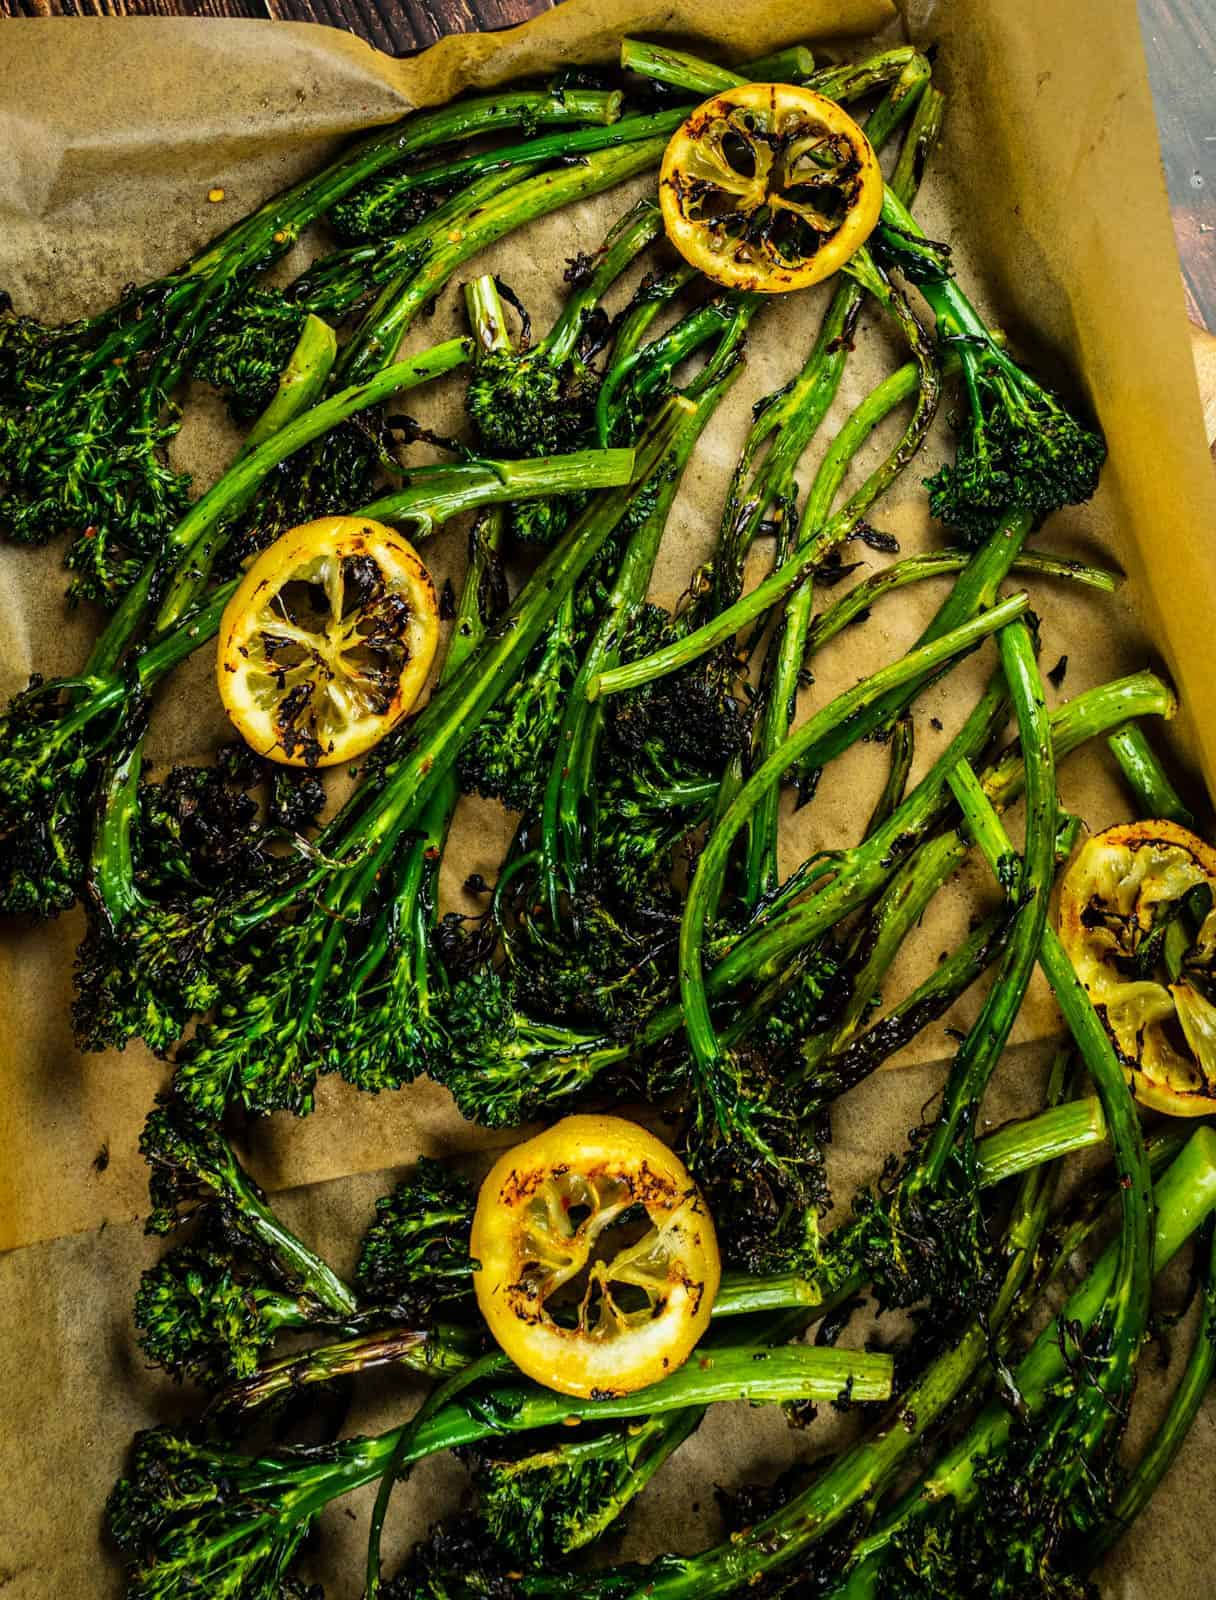 grilled broccolini and lemon slices on parchment paper